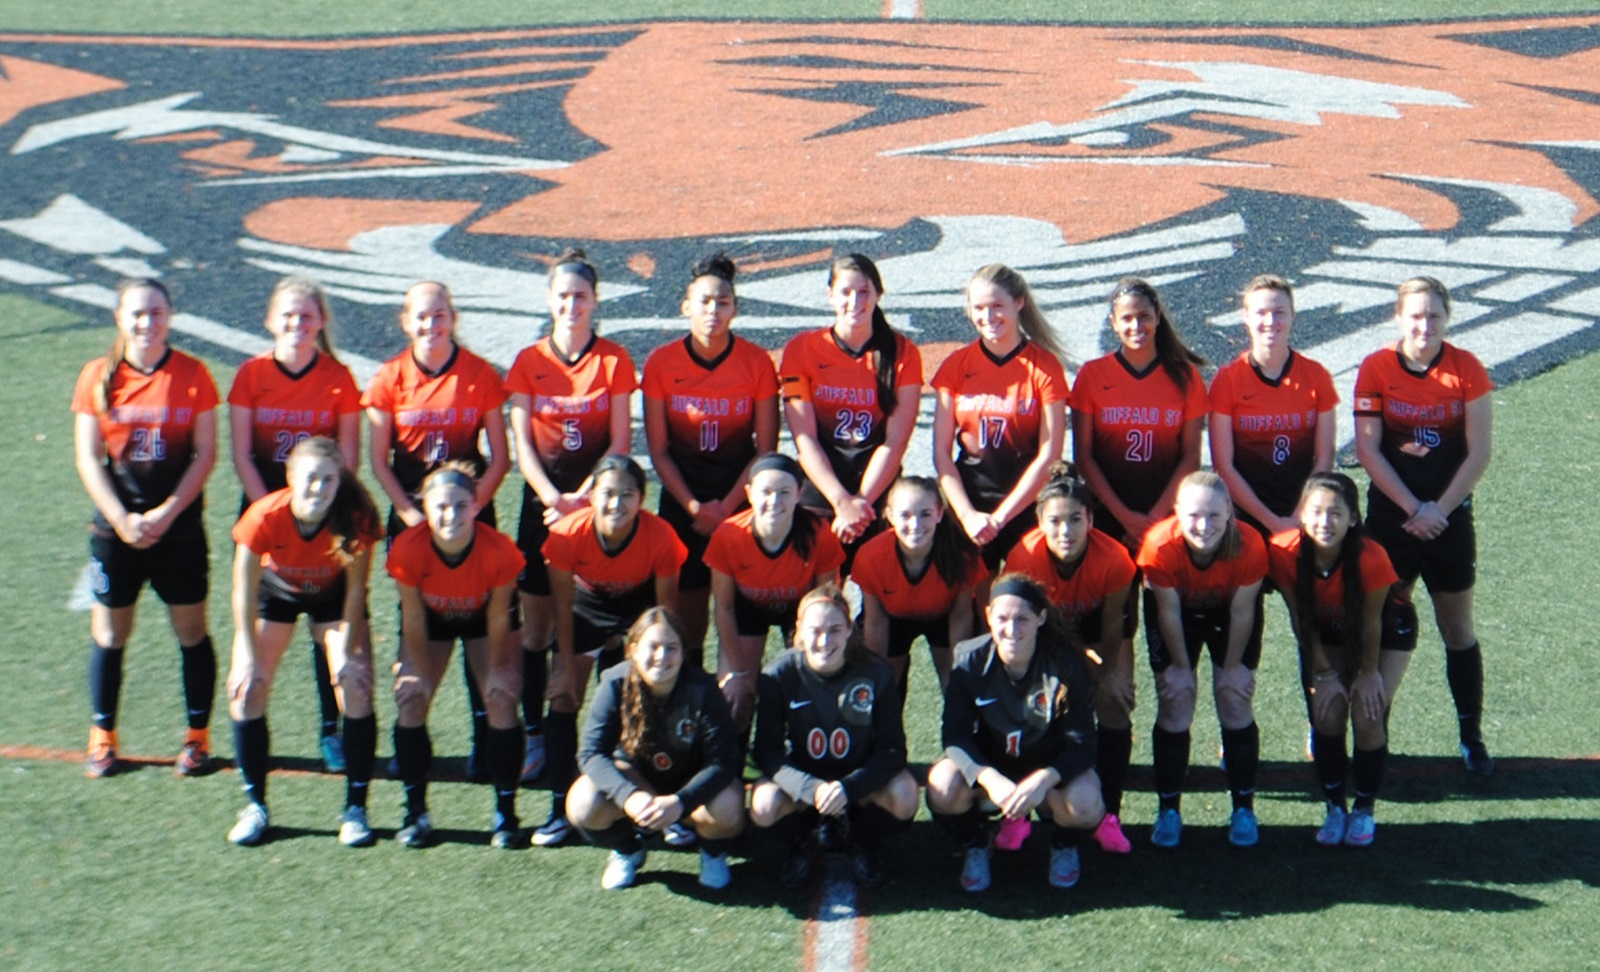 A 2015 team picture of the Buffalo State College women's soccer team. (Buffalo State Athletics)